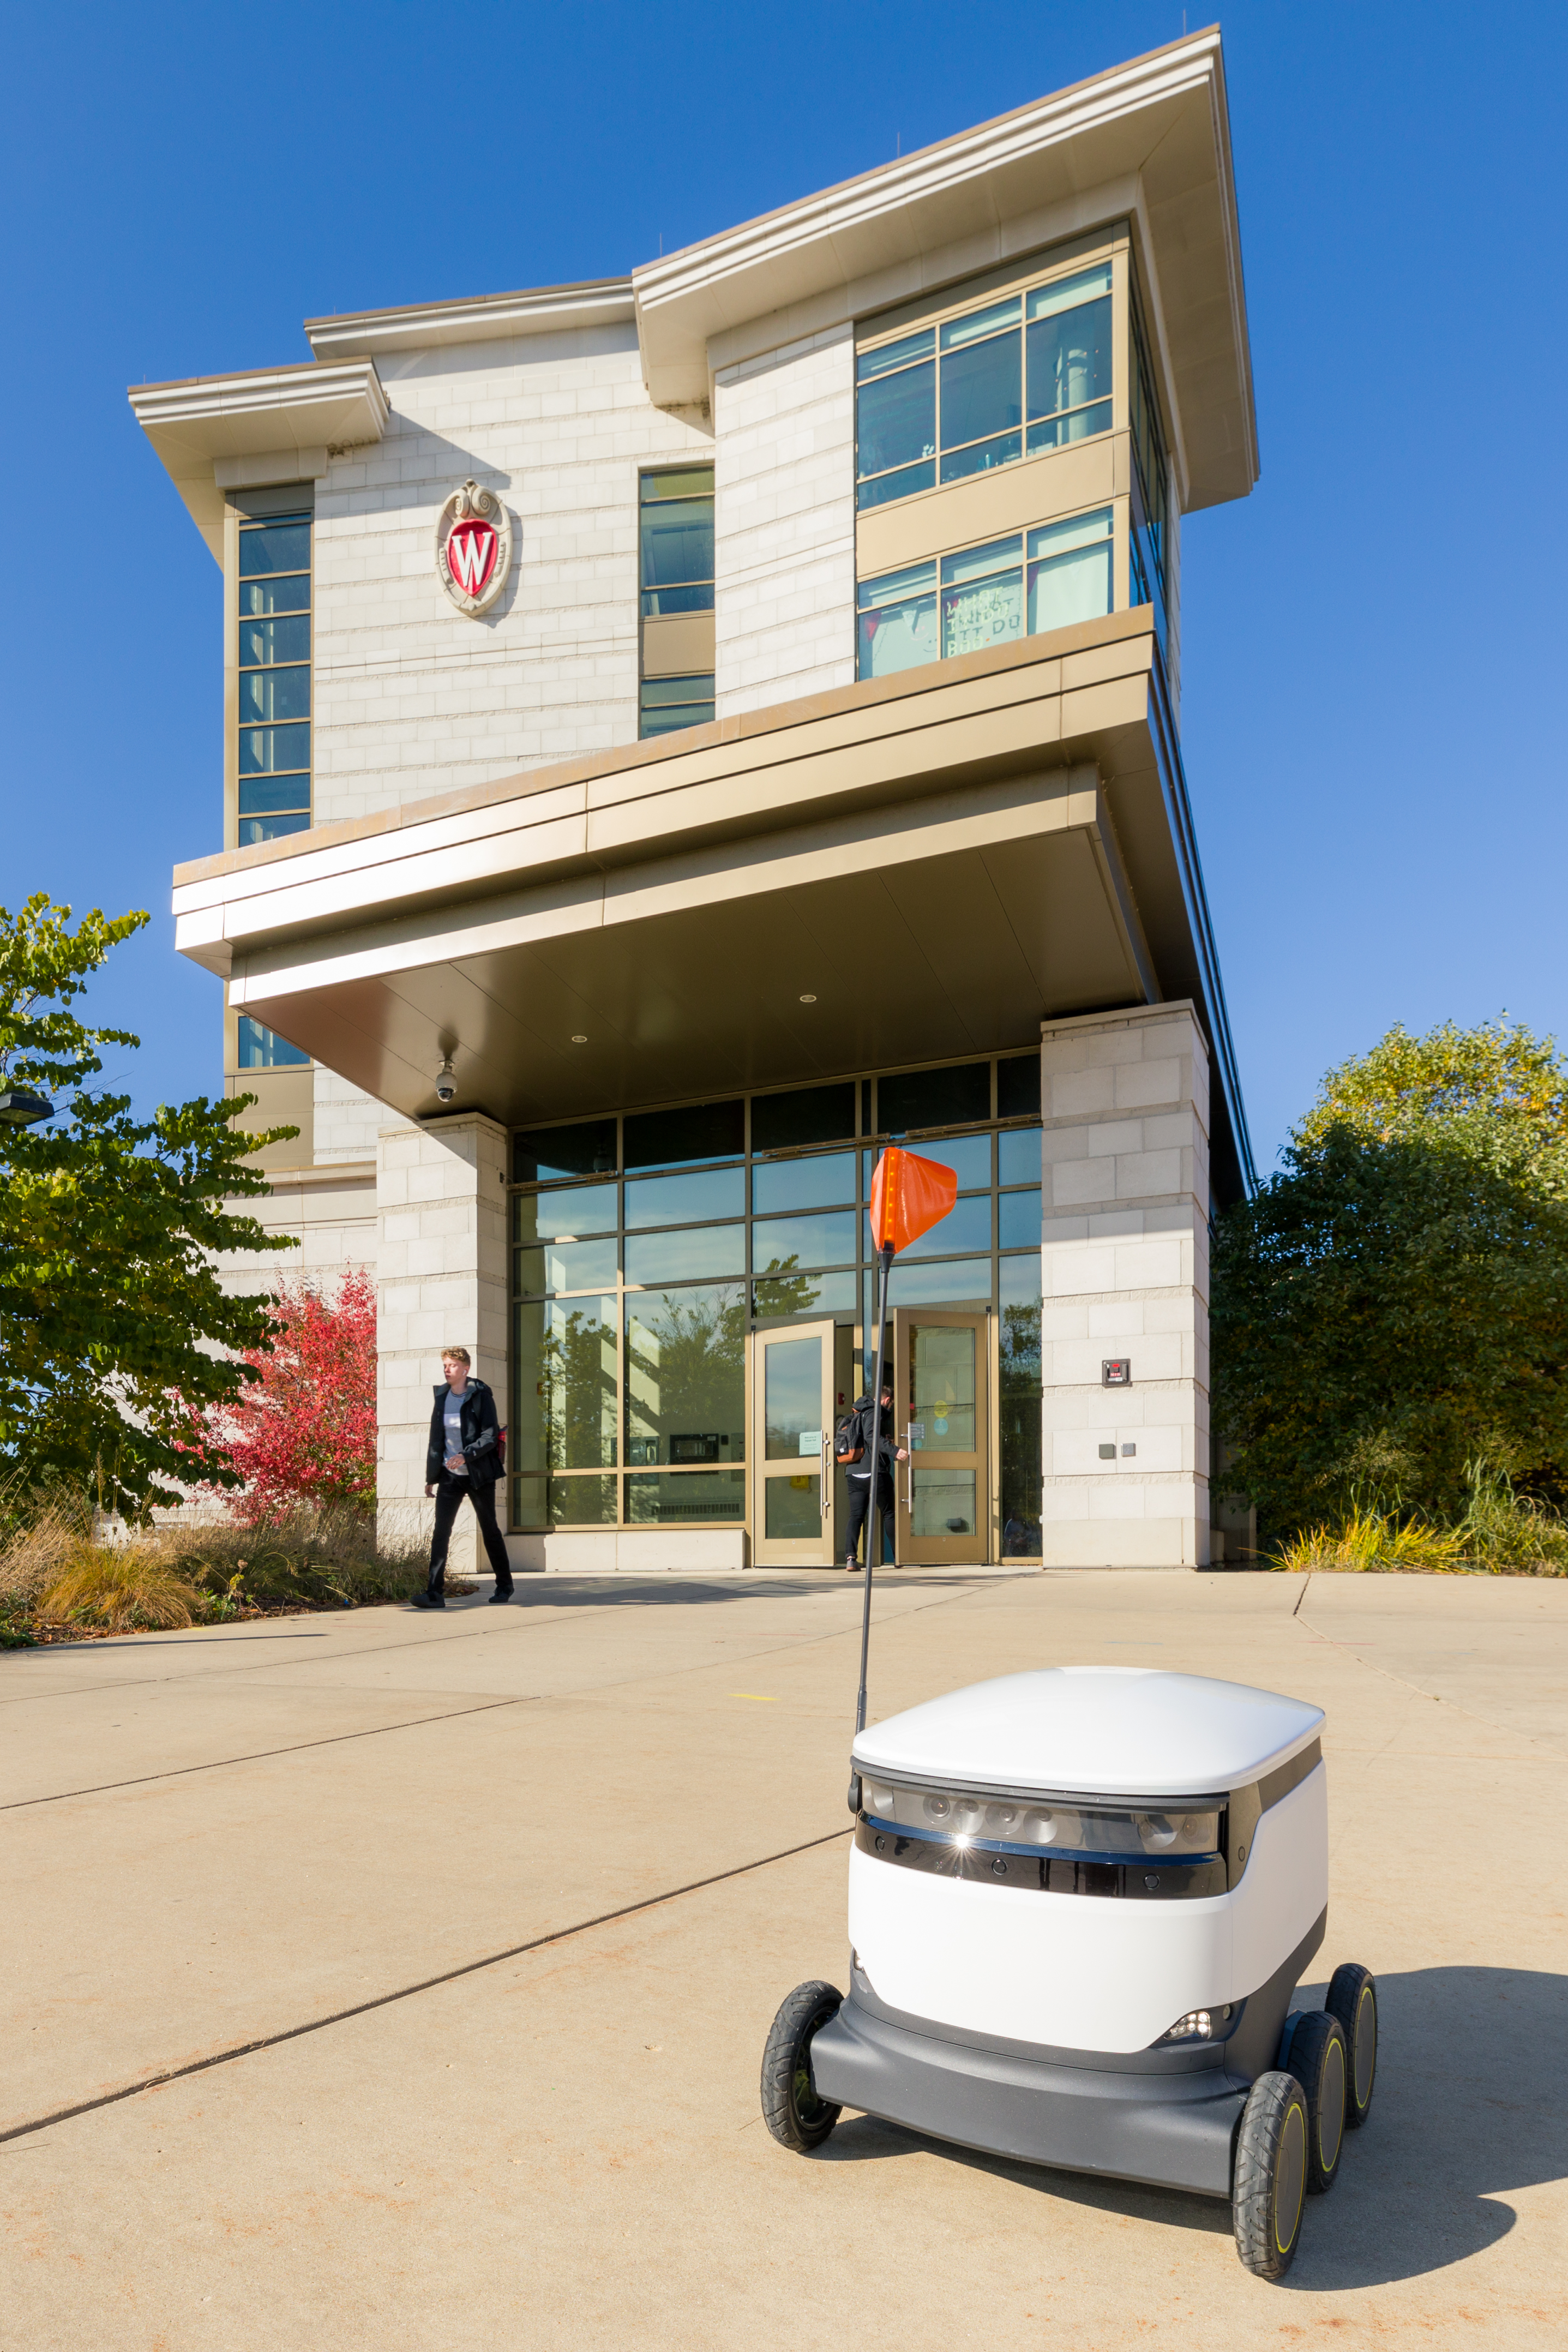 A Starship Delivery robot stand ready to deliver food outside Dejope Residence Hall.